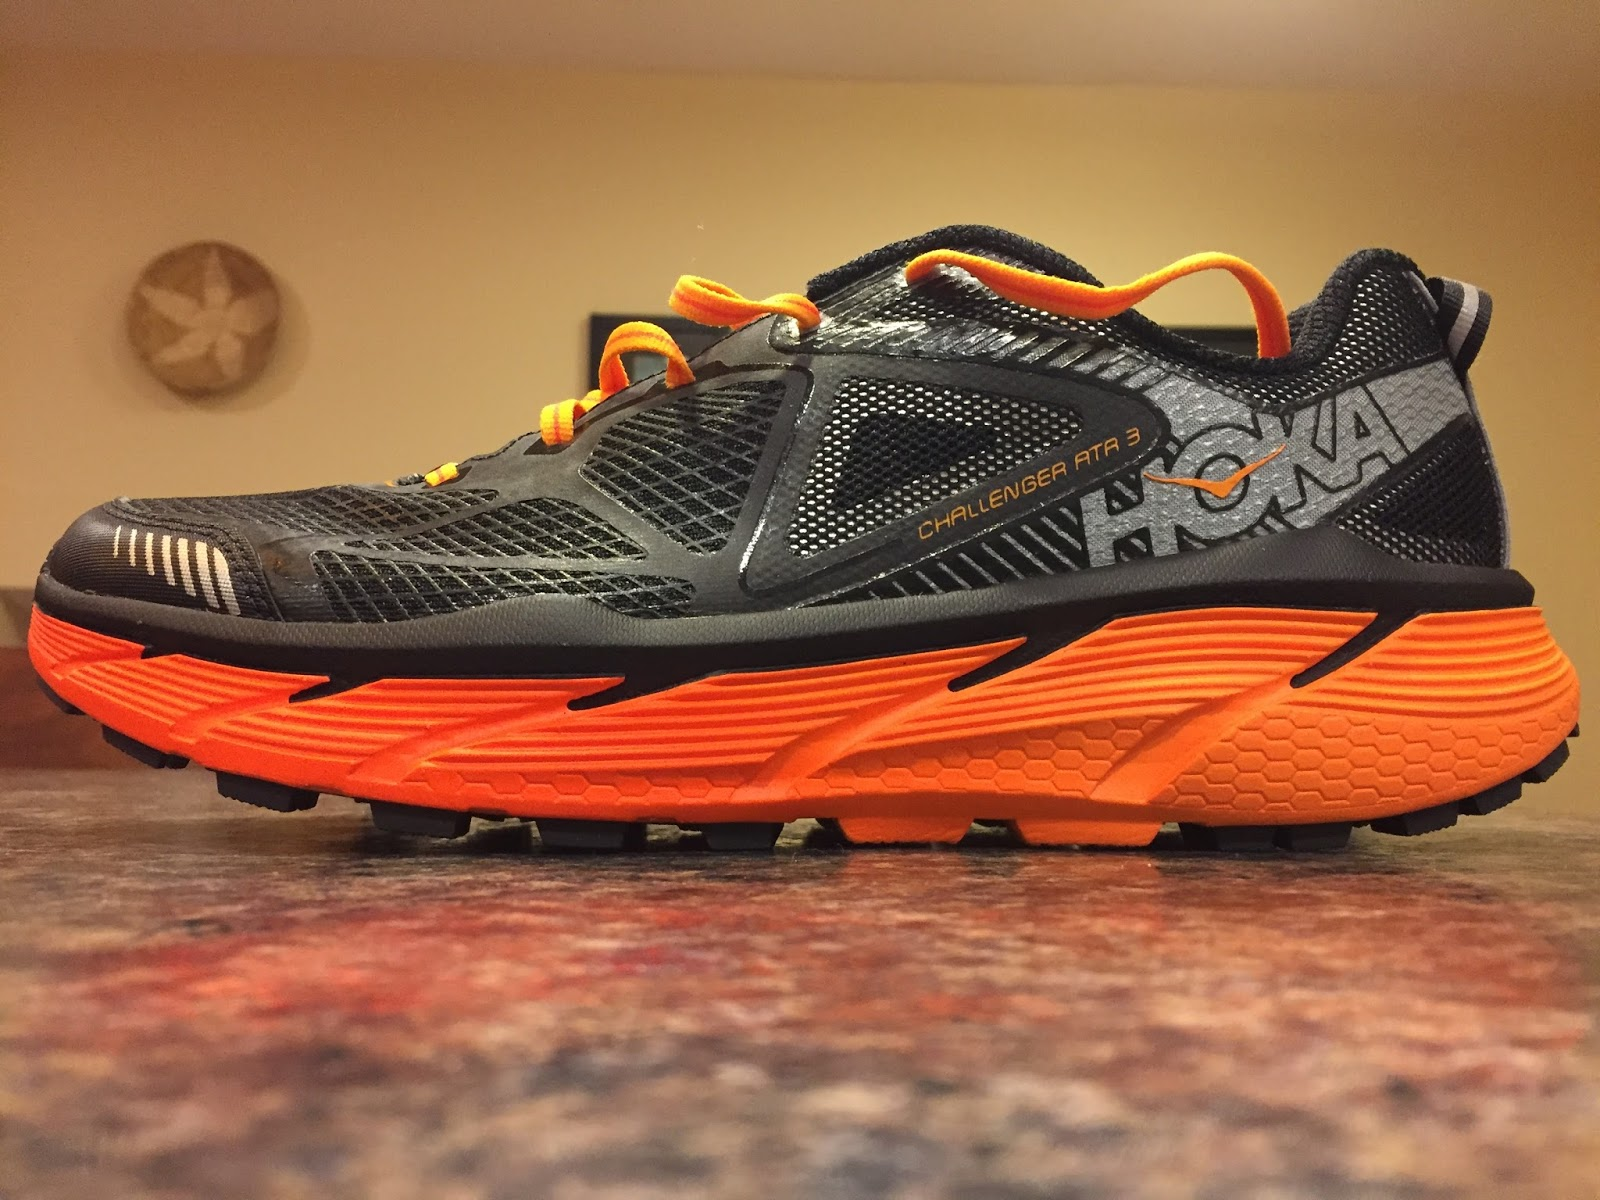 RunJeff Of 2016 Trail Gear Shoes Road And Running Valliere's c4Rq5A3jL